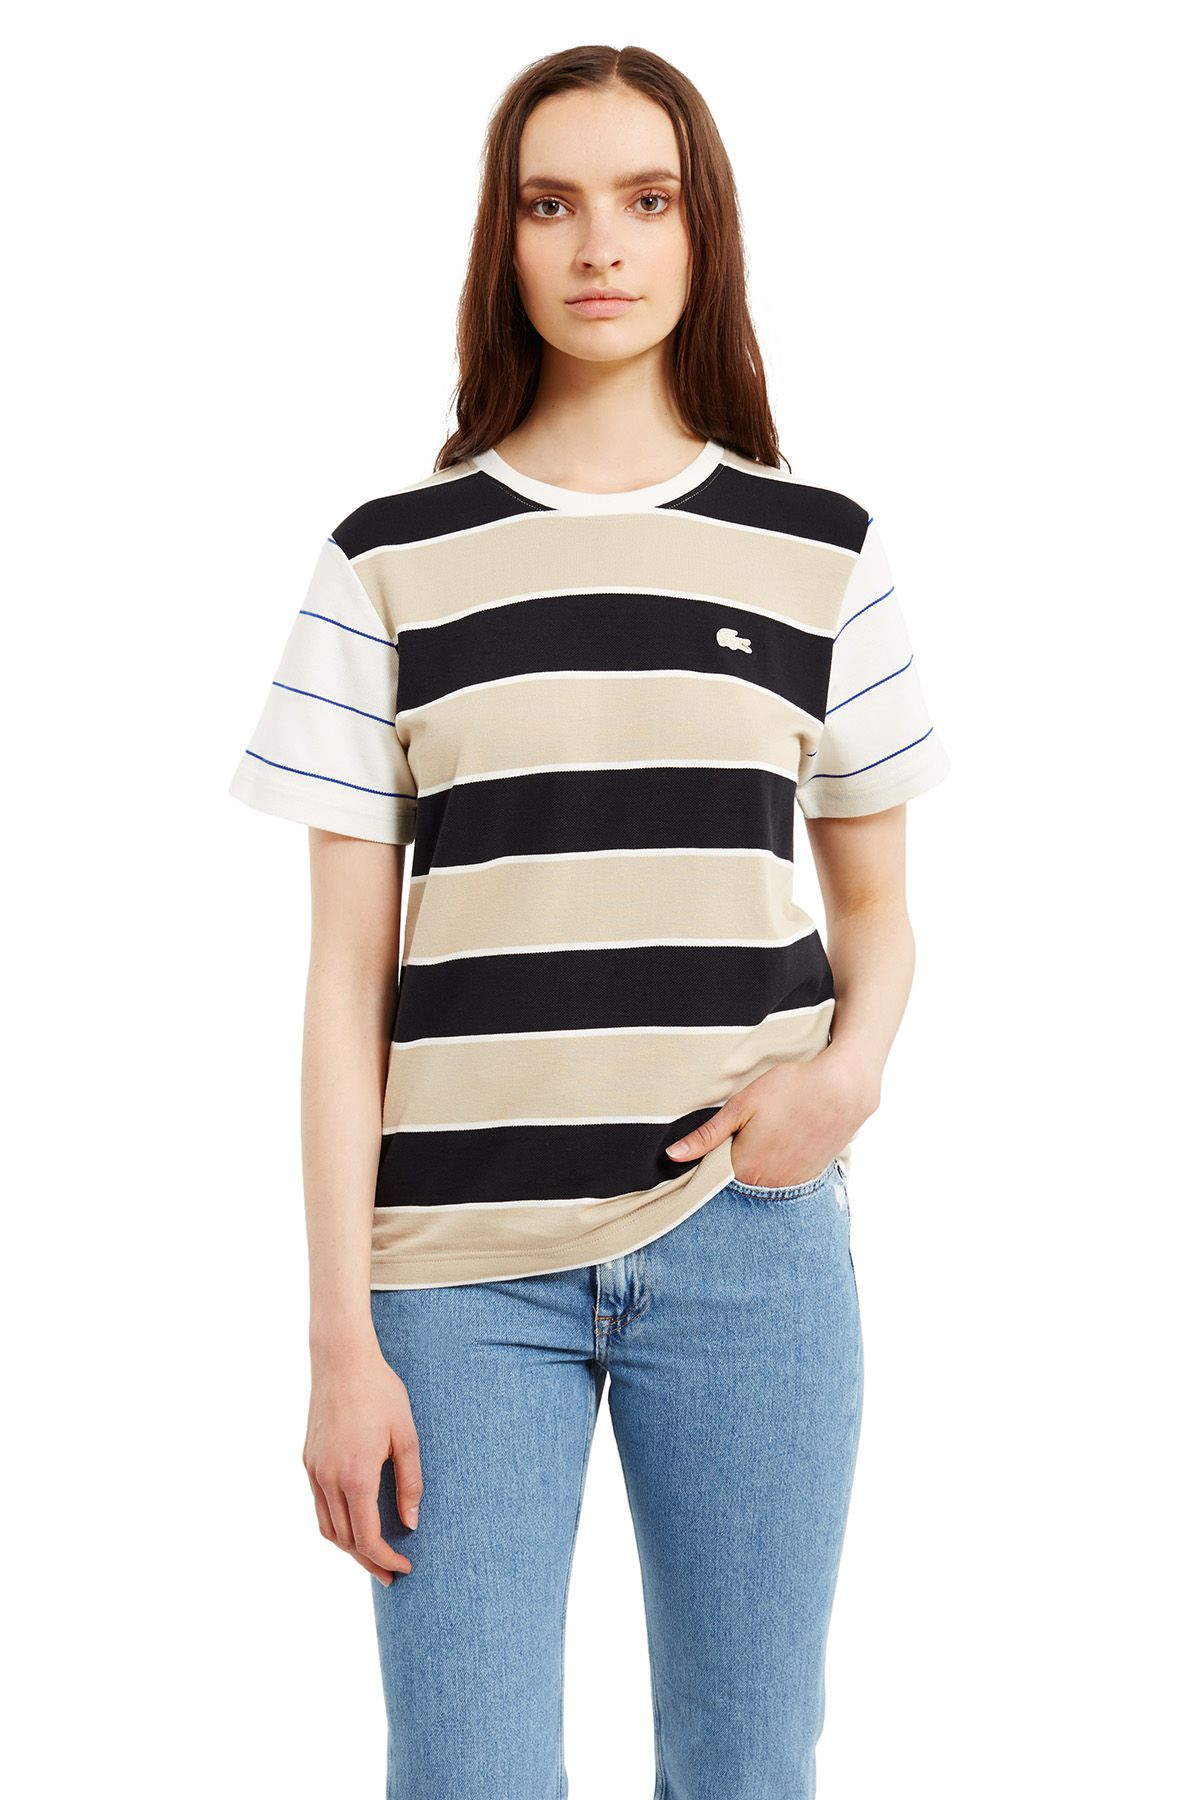 Lacoste x Opening Ceremony striped tee